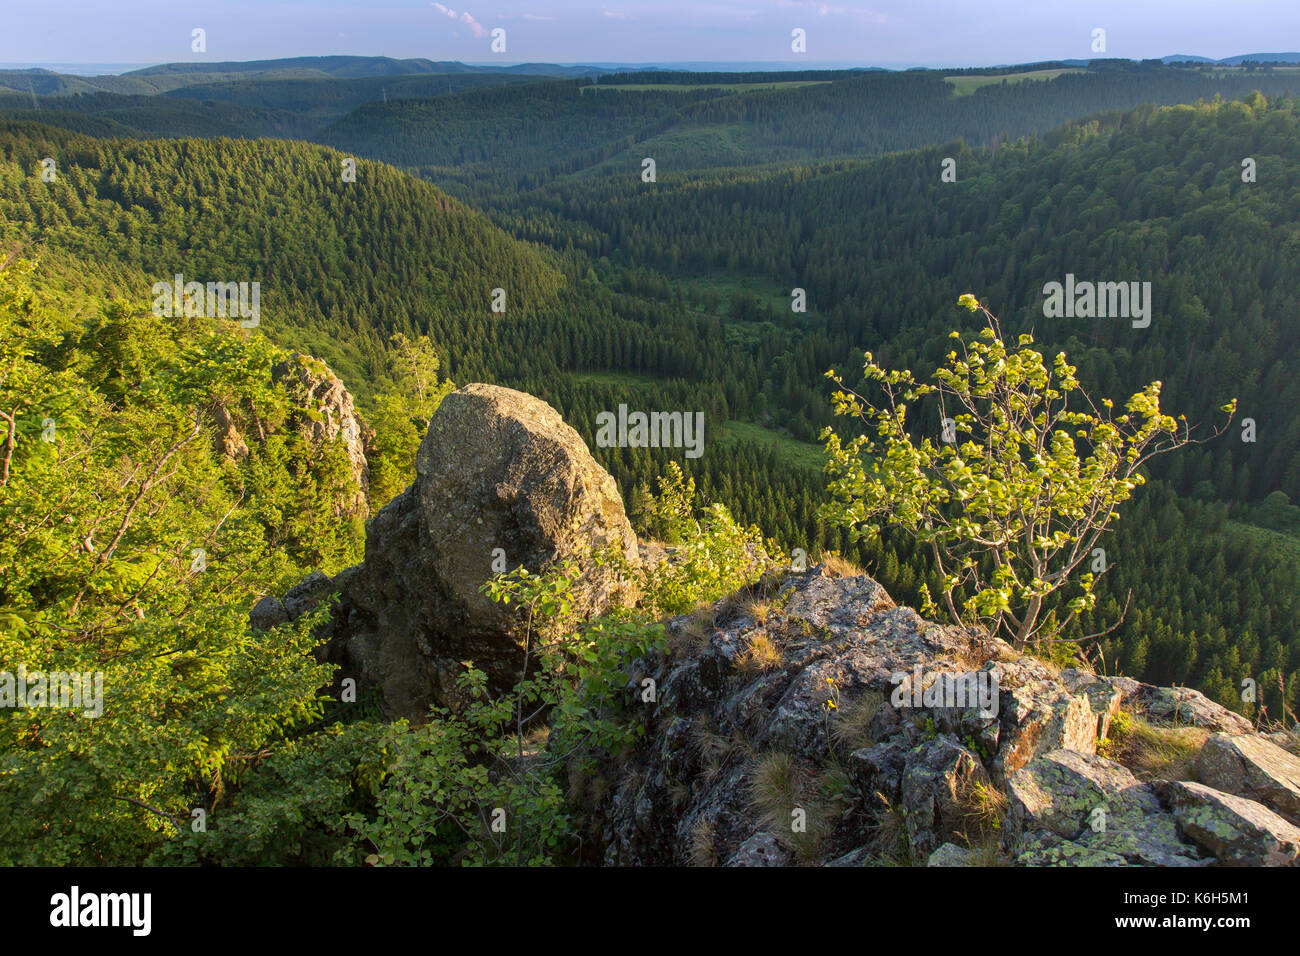 Hahnenkleeklippen / Hahnenklee Crags at Upper Harz / Oberharz in the Harz National Park, Lower Saxony, Germany - Stock Image